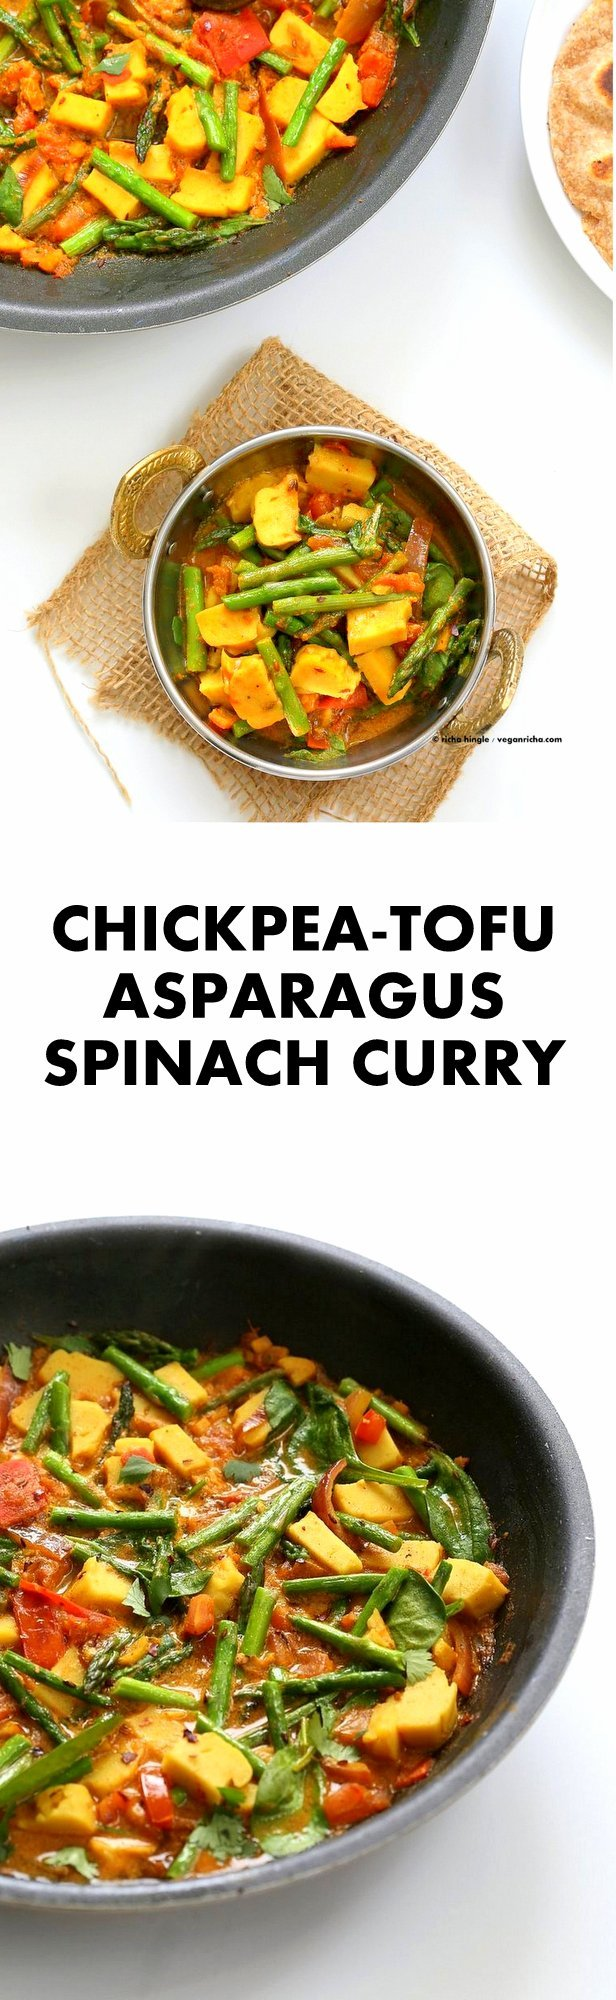 Easy Asparagus Curry with Chickpea Tofu and Indian Spices and tomato sauce. #Indian #Vegan #Glutenfree #Soyfree #Recipe. Serve with Rice or flatbread. | VeganRicha.com